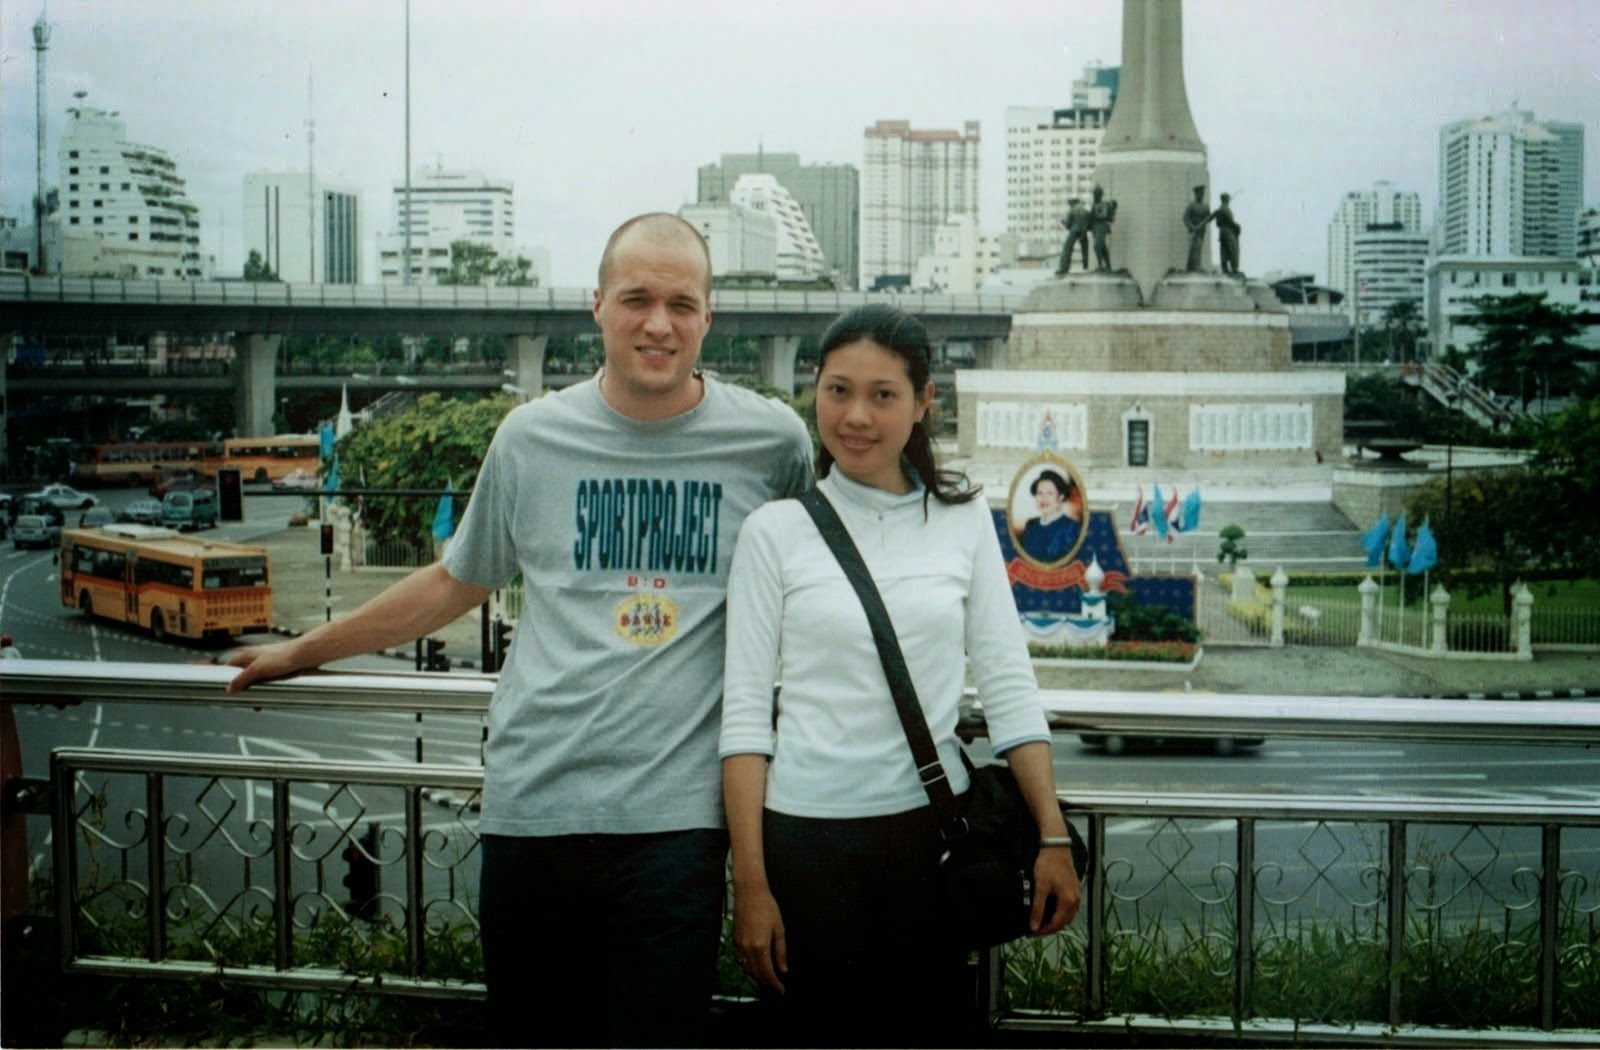 Victory Monument, 2000